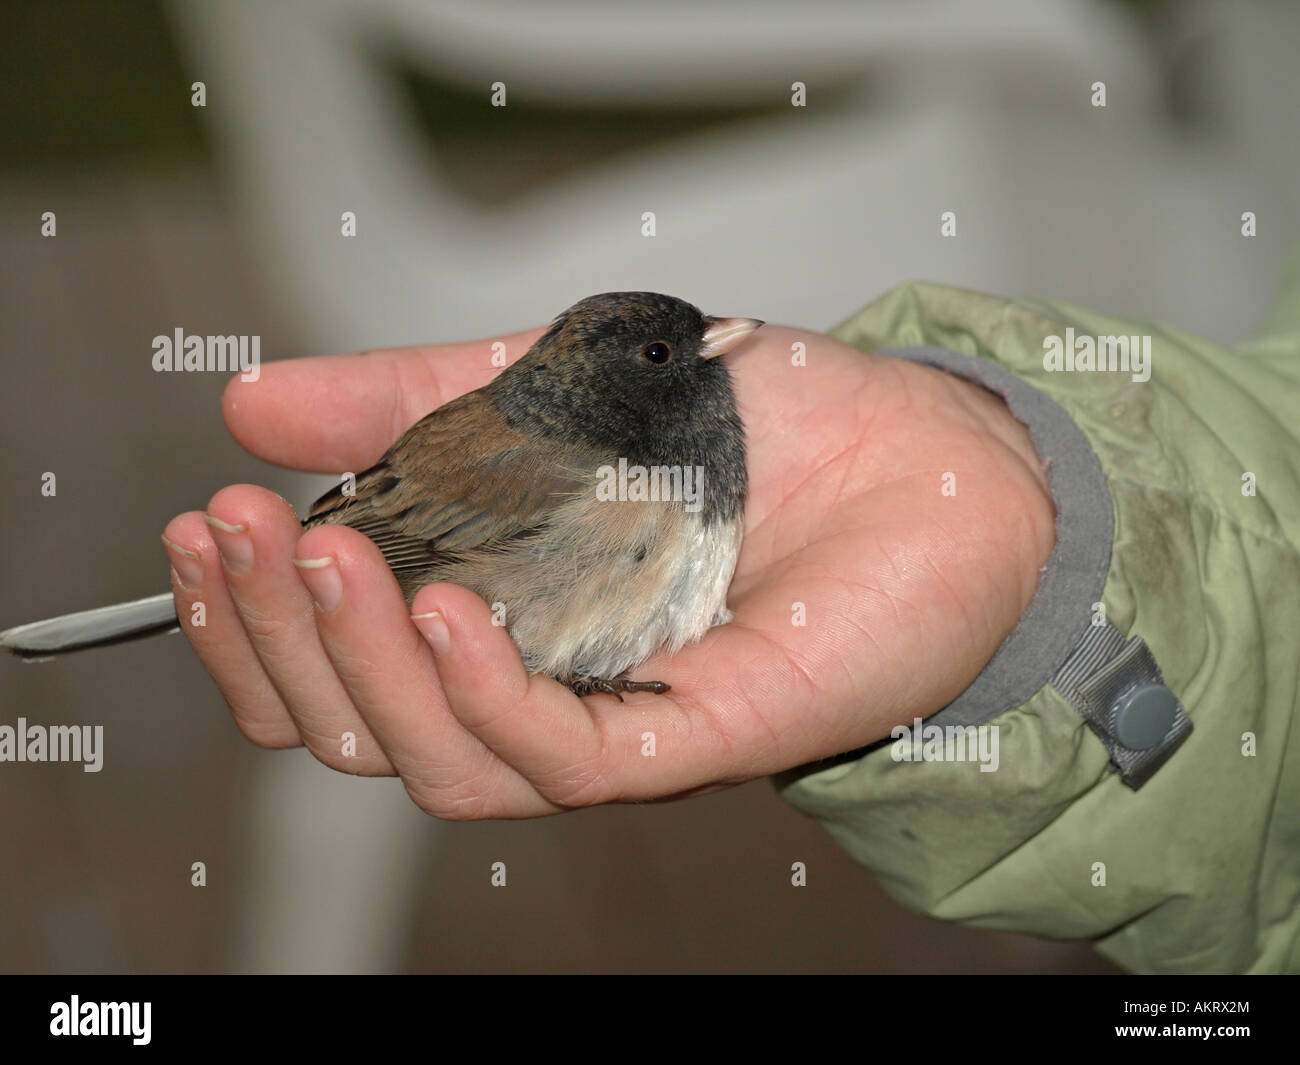 bird in the hand theory